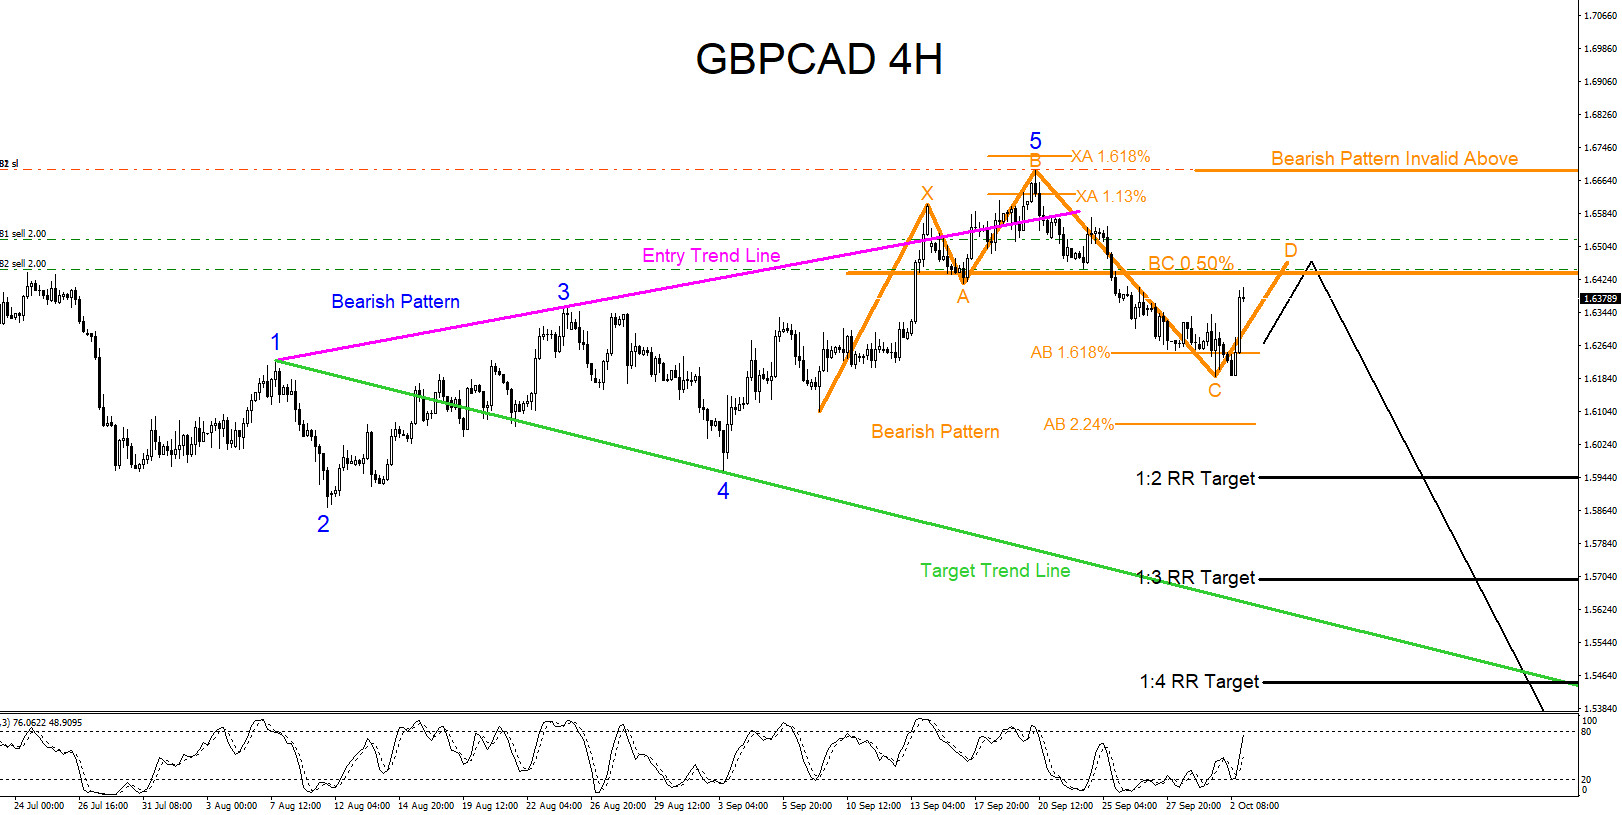 GBPCAD : Bearish Market Patterns Calling for Another Move Lower